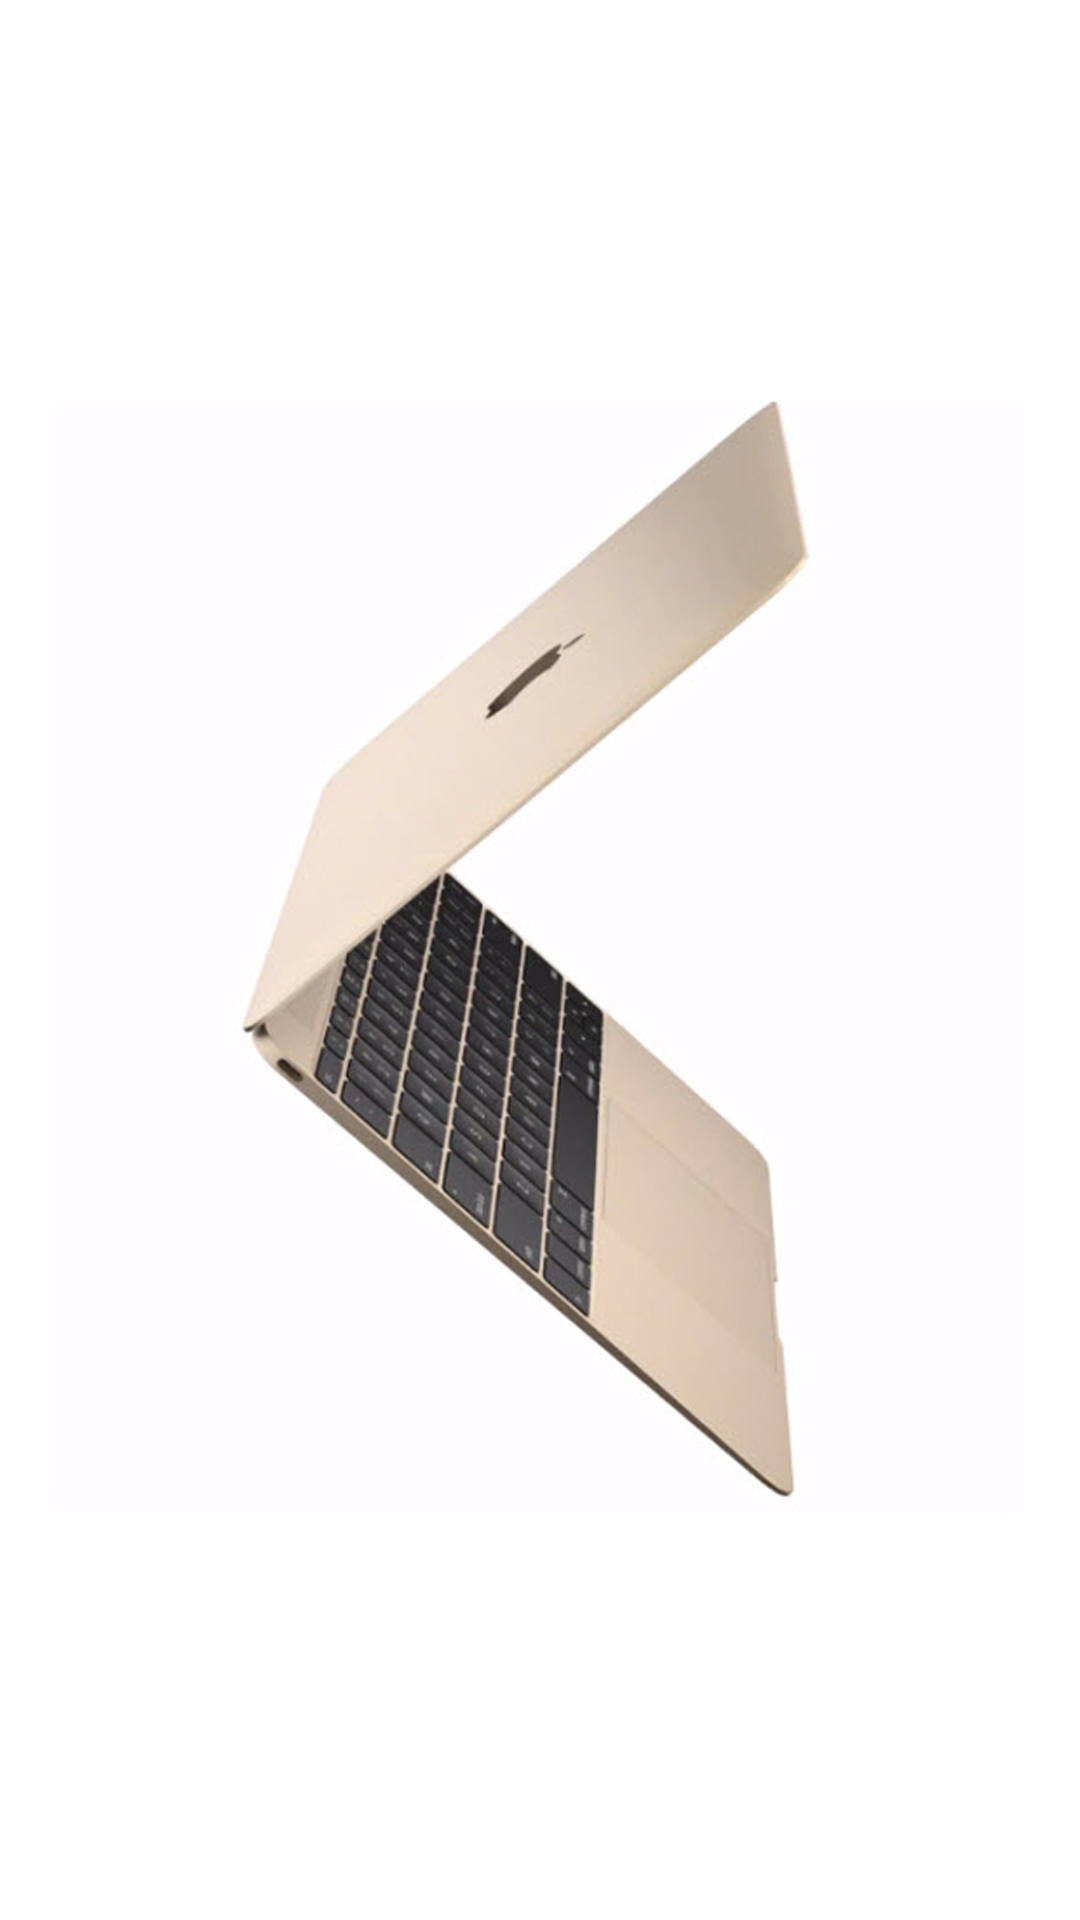 Apple MacBook MK4N2HN/A Notebook (Intel Dual Core M-5Y10c/8 GB/512 GB/30.48 cm (12)/Mac OS X Yosemite) (Gold)